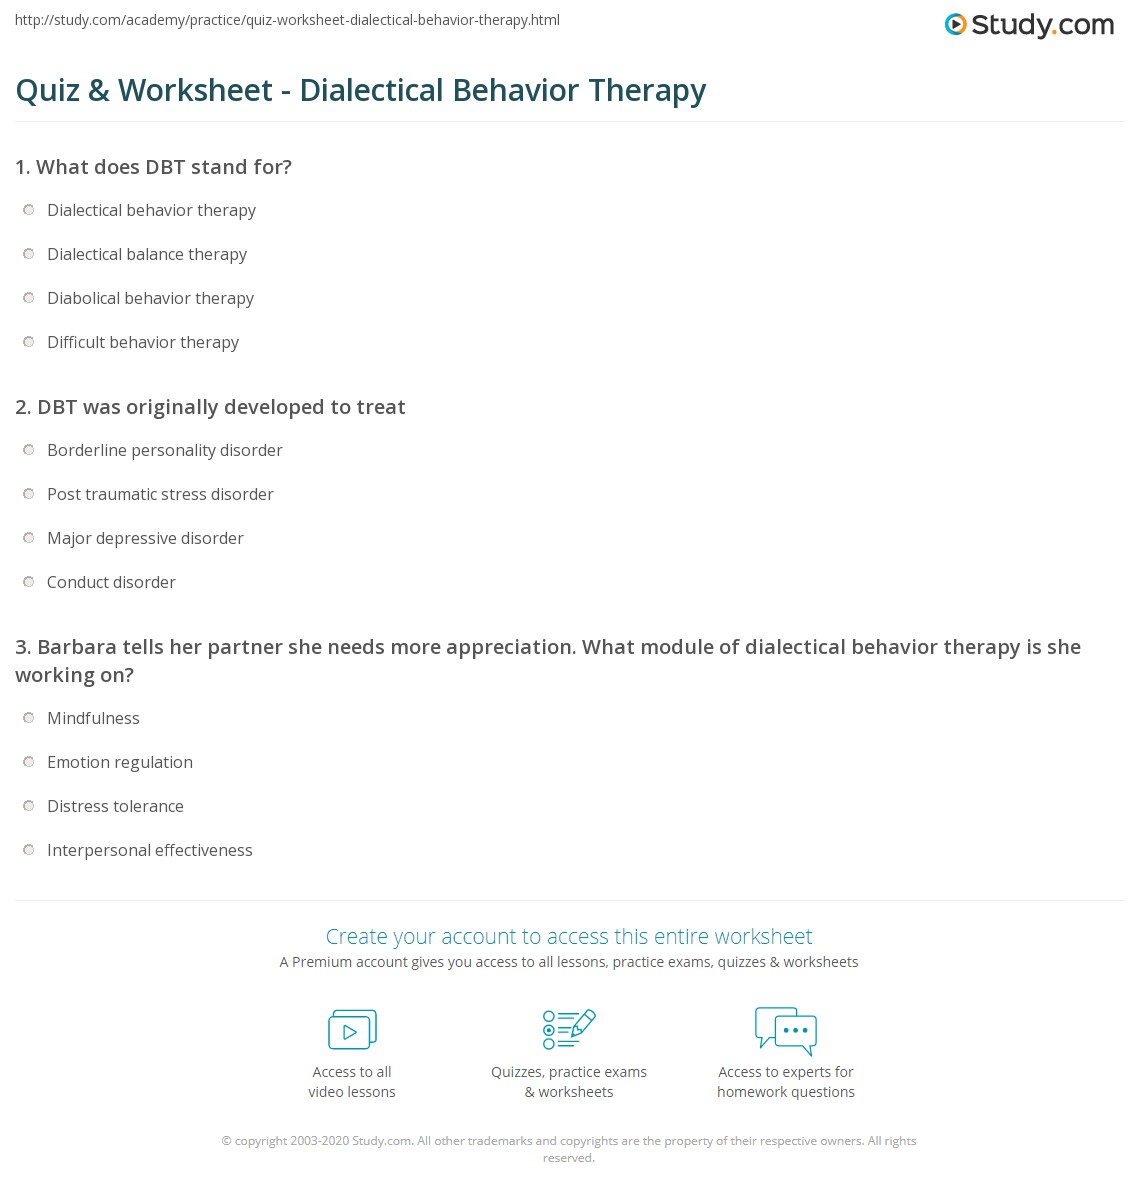 Quiz & Worksheet Dialectical Behavior Therapy